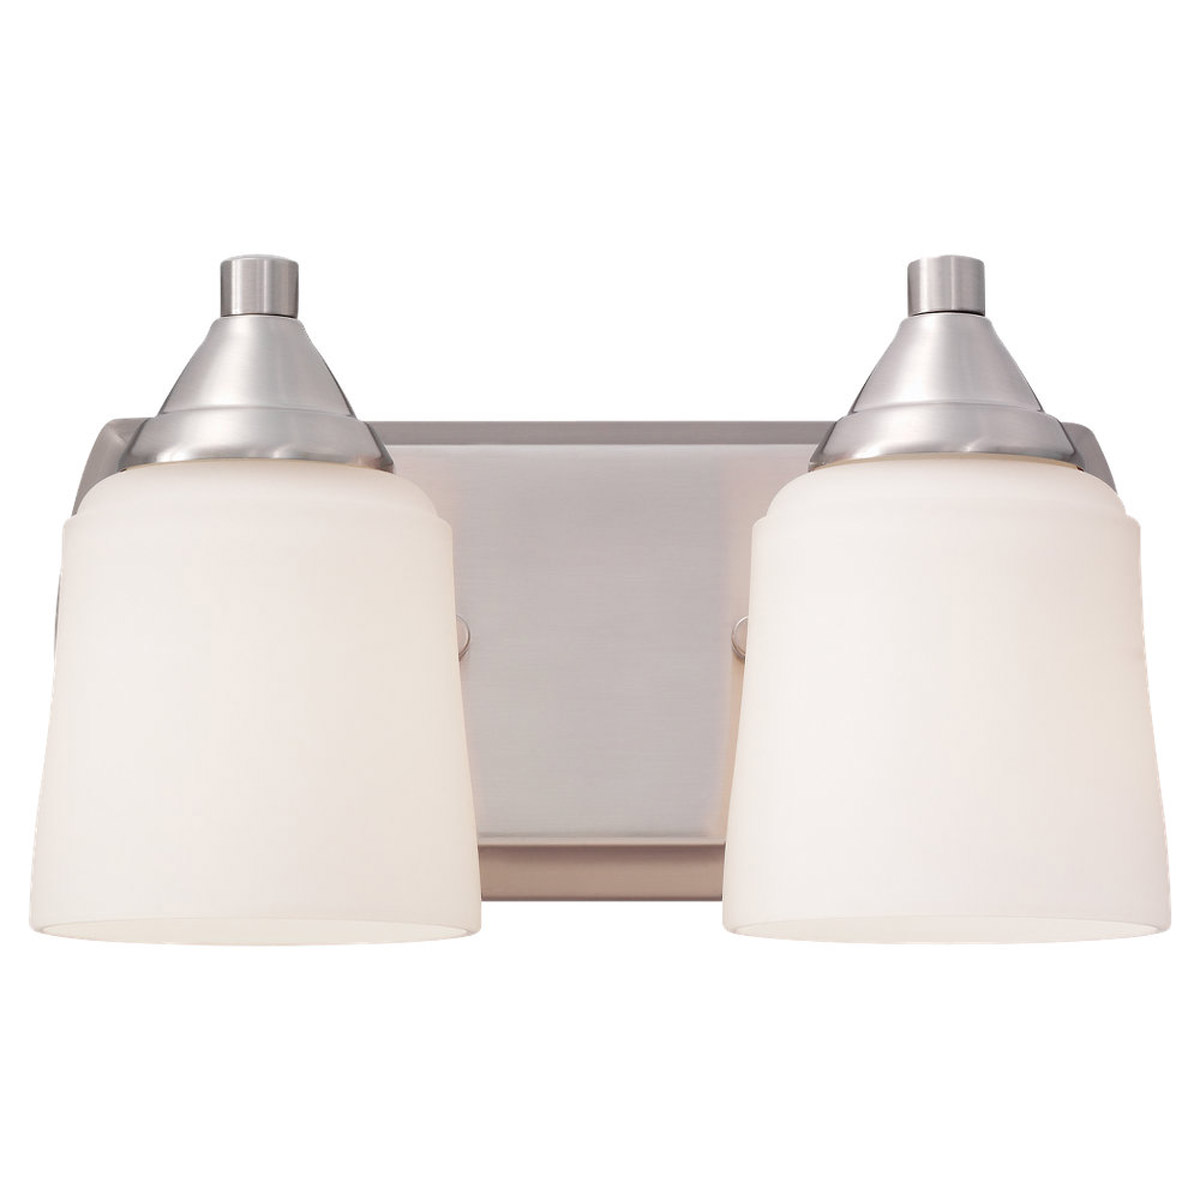 Sea Gull Lighting Brisbane 2 Light Wall / Bath / Vanity in Brushed Nickel 44356-962 photo